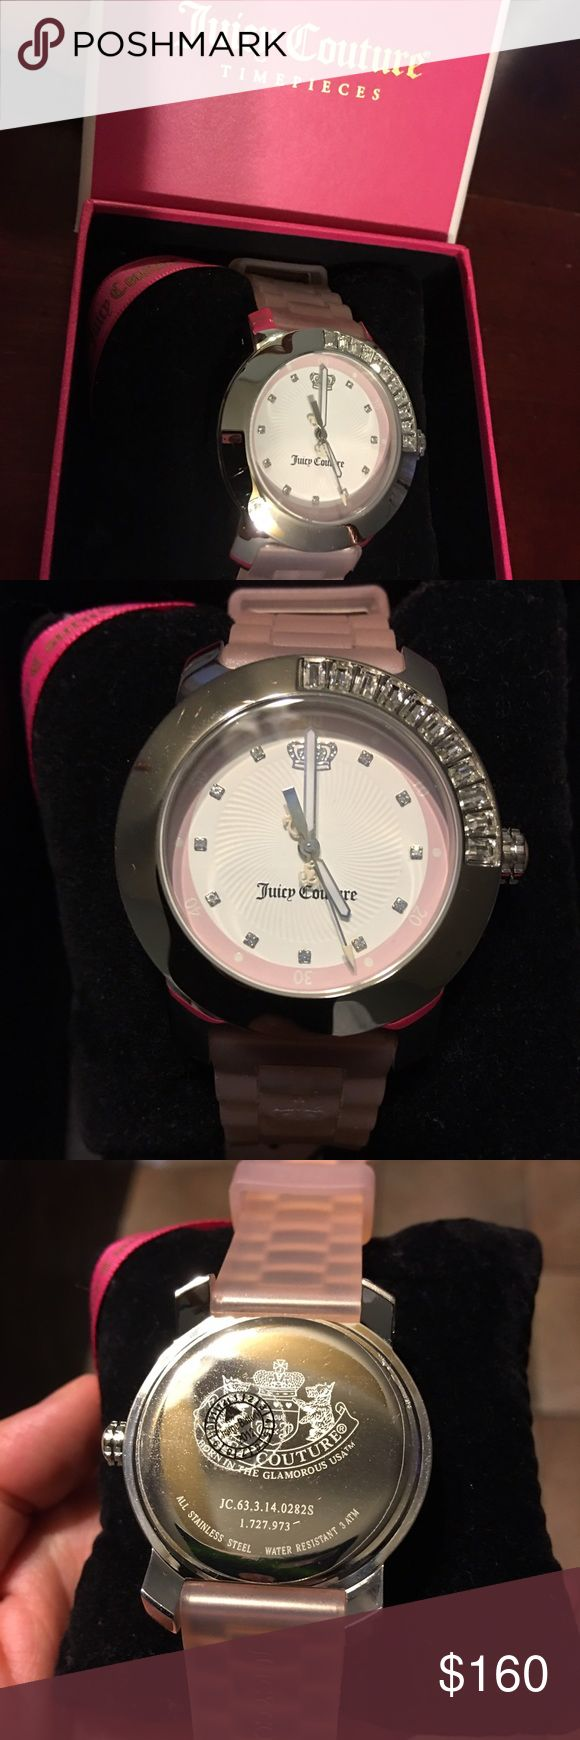 ♨️24hr SALE♨️ Juicy couture watch New with tags juicy couture watch the battery need to be replace and it has a small scratch on the back Juicy Couture Accessories Watches